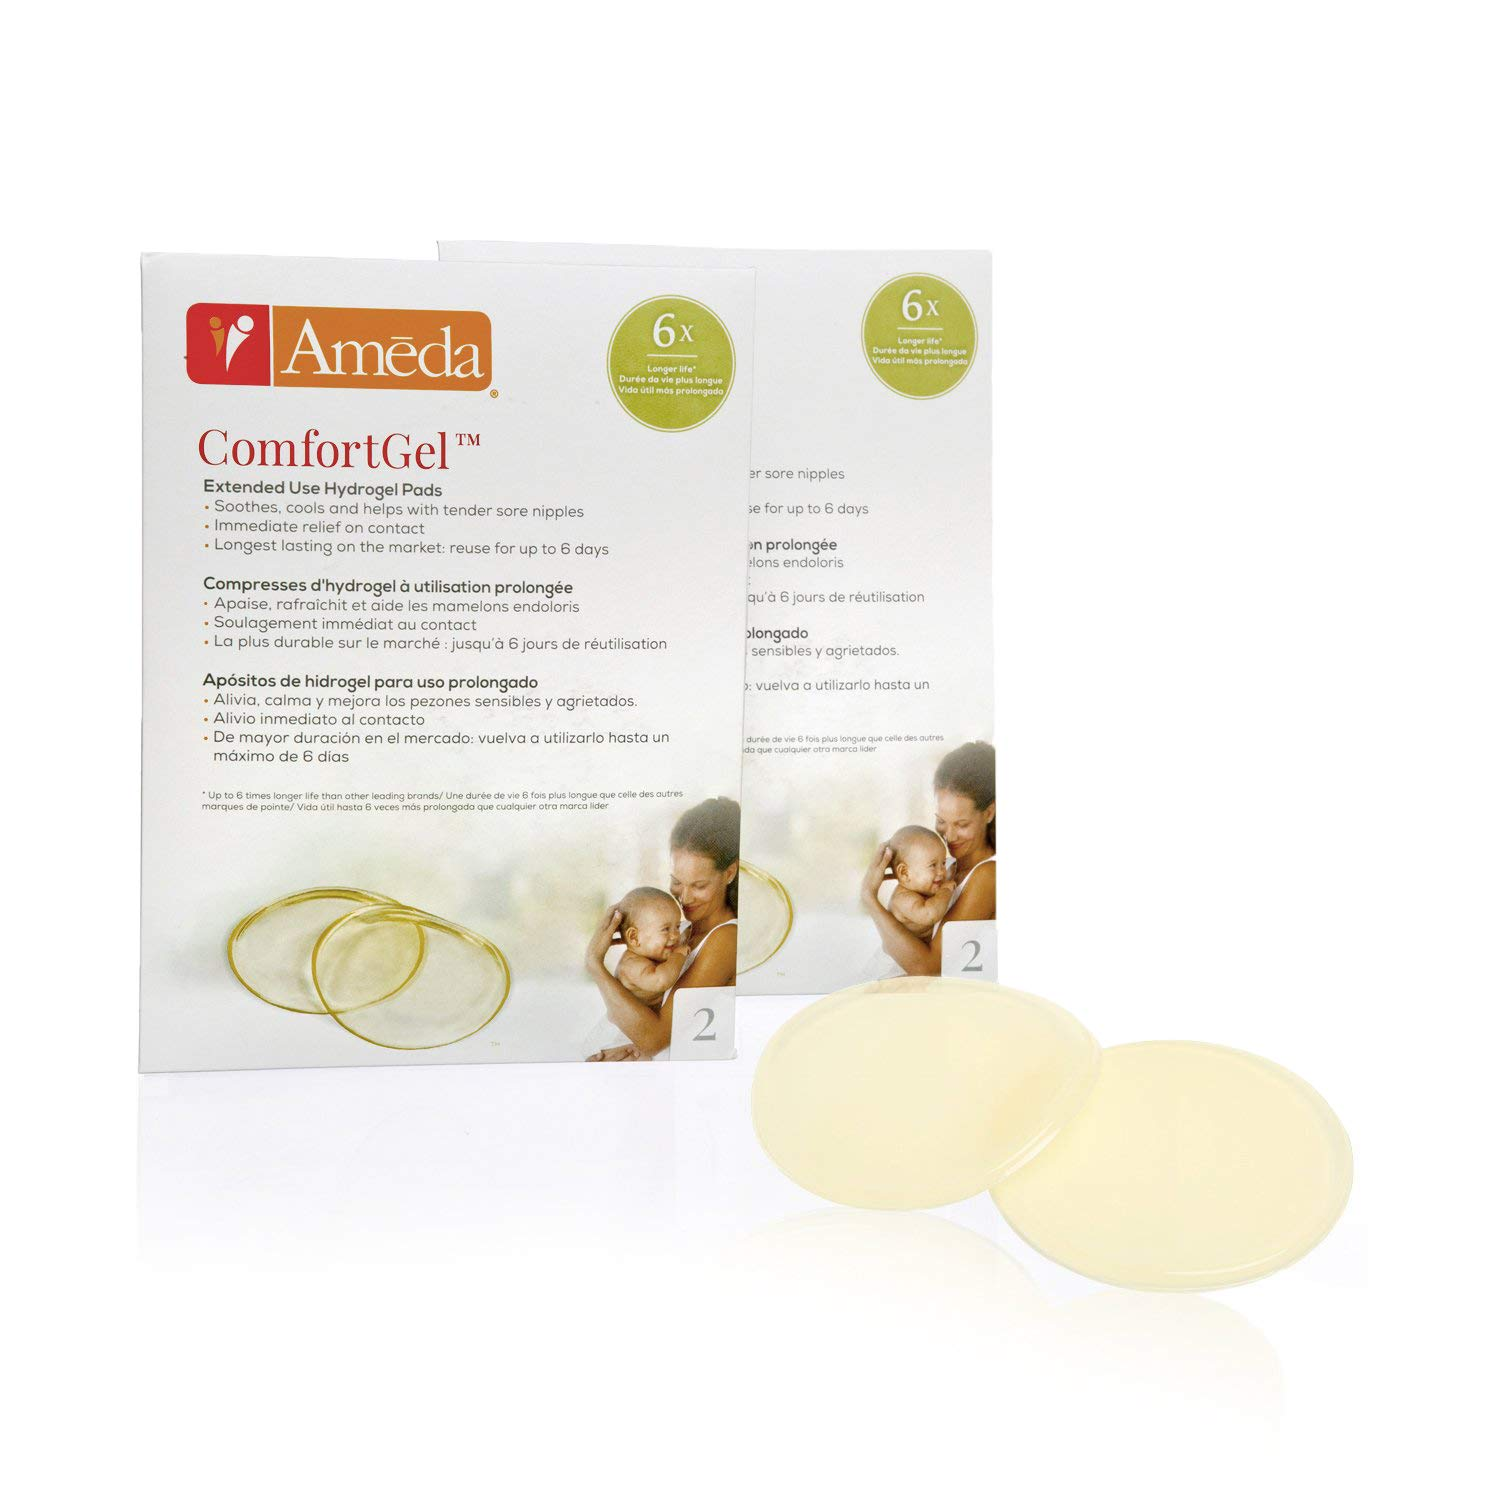 2 Pair Nipple Therapy Reusable Cooling Relief Ameda Comfortgel Soothing Breastfeeding Pads 4 Count Helps Provide